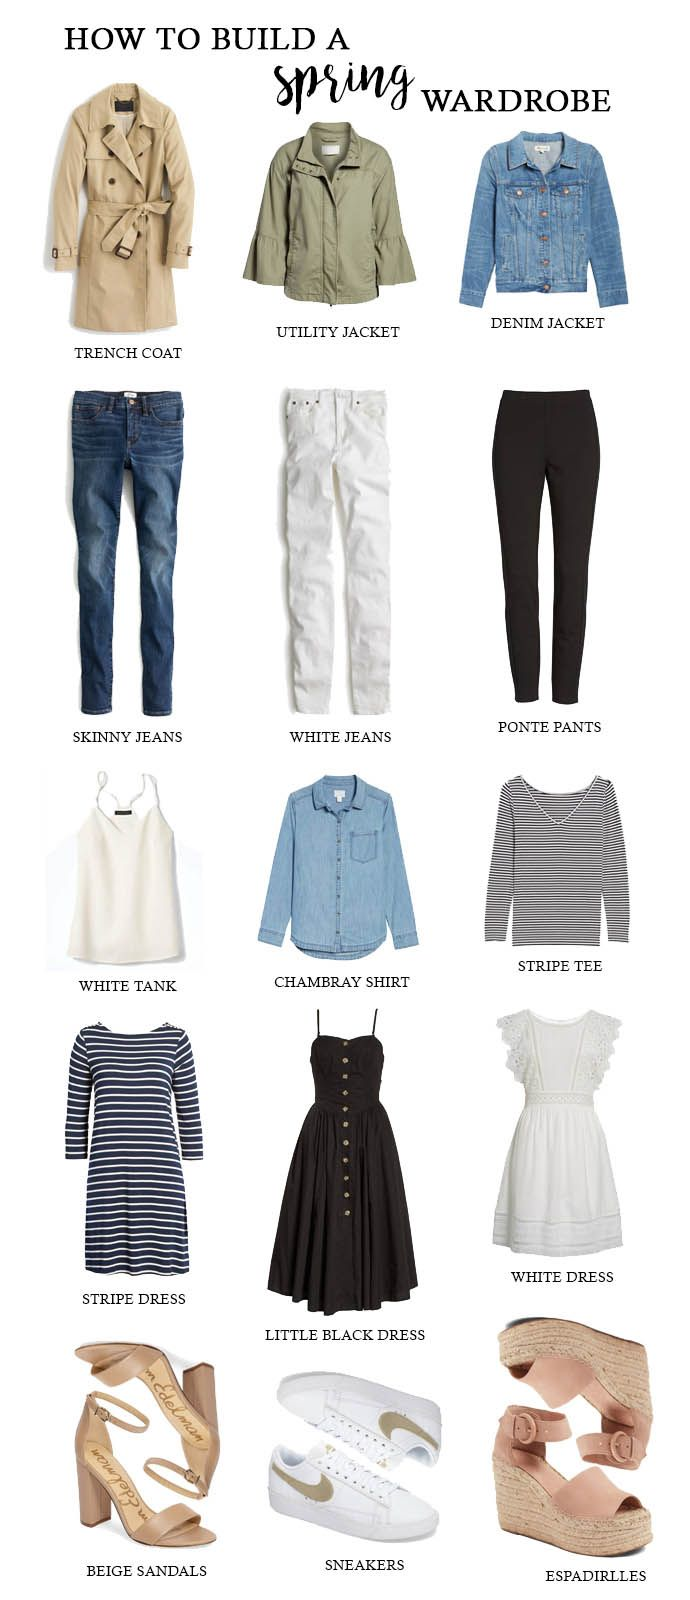 How to Build A Spring Wardrobe: 15 basic and closet staple pieces for spring that are easy to mix and match to create multiple outfits.